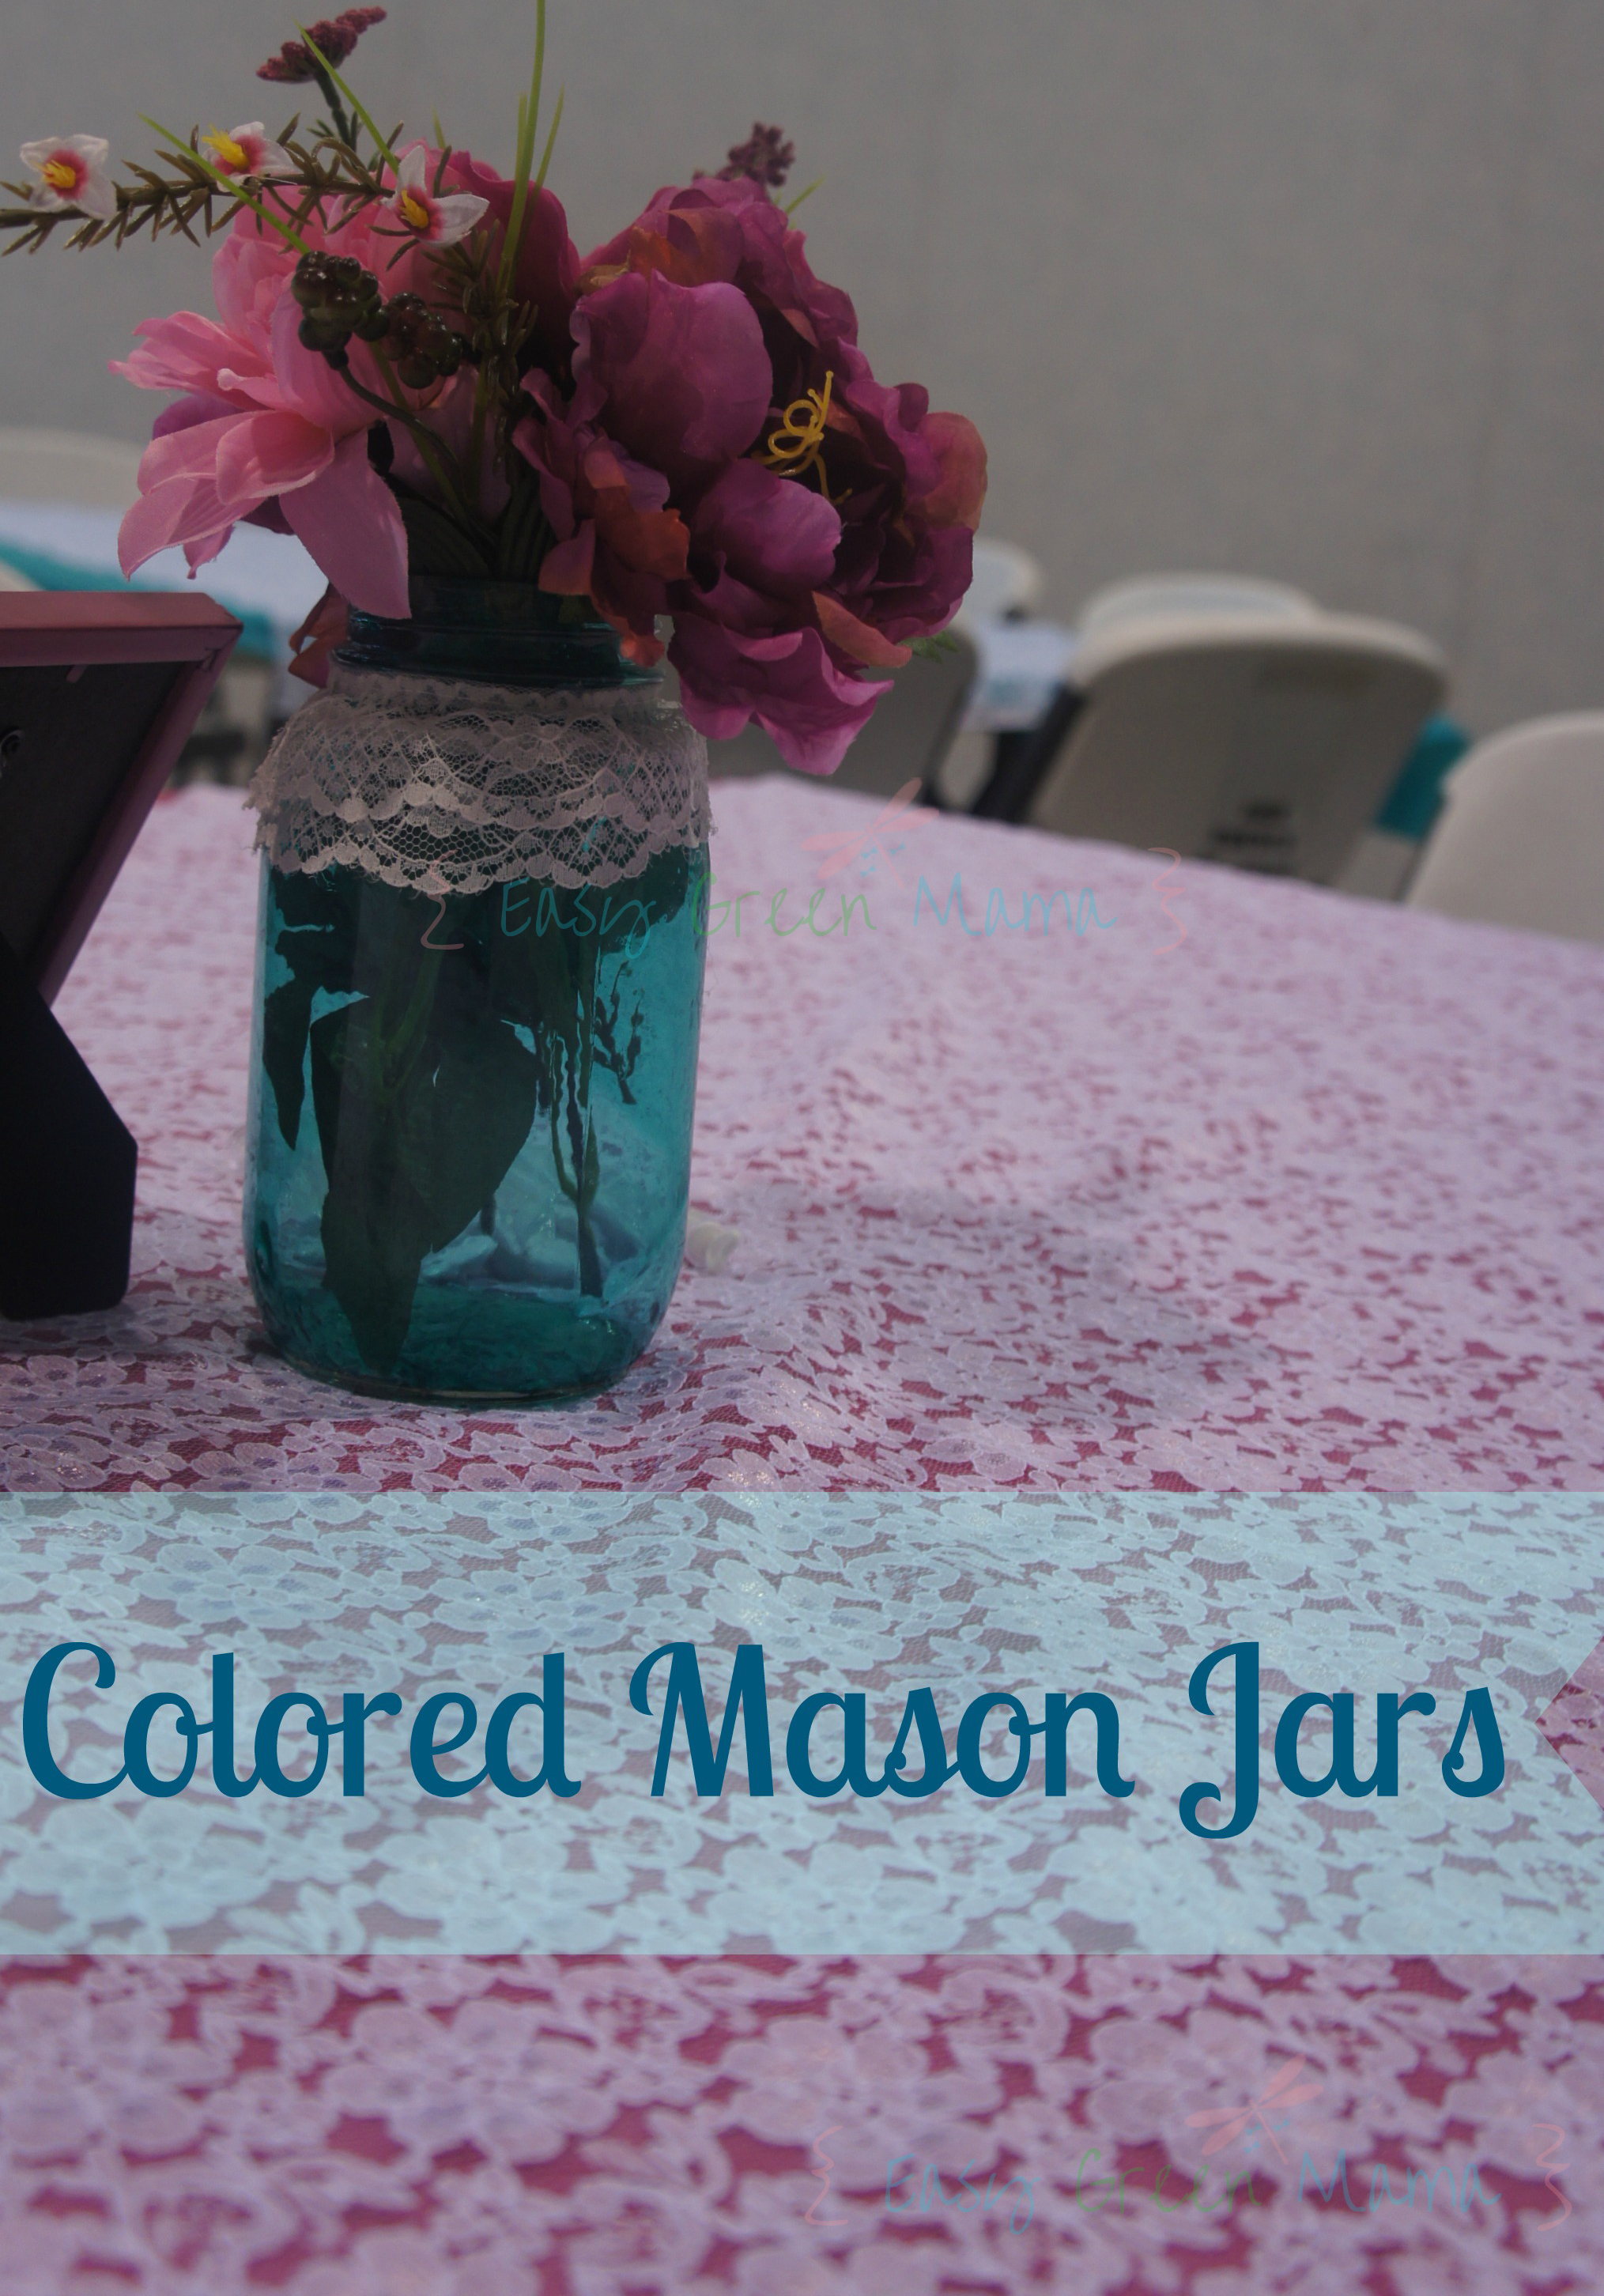 Diy colored mason jars country wedding centerpiece ideas rays diy colored mason jars country wedding centerpiece ideas rays of bliss junglespirit Image collections